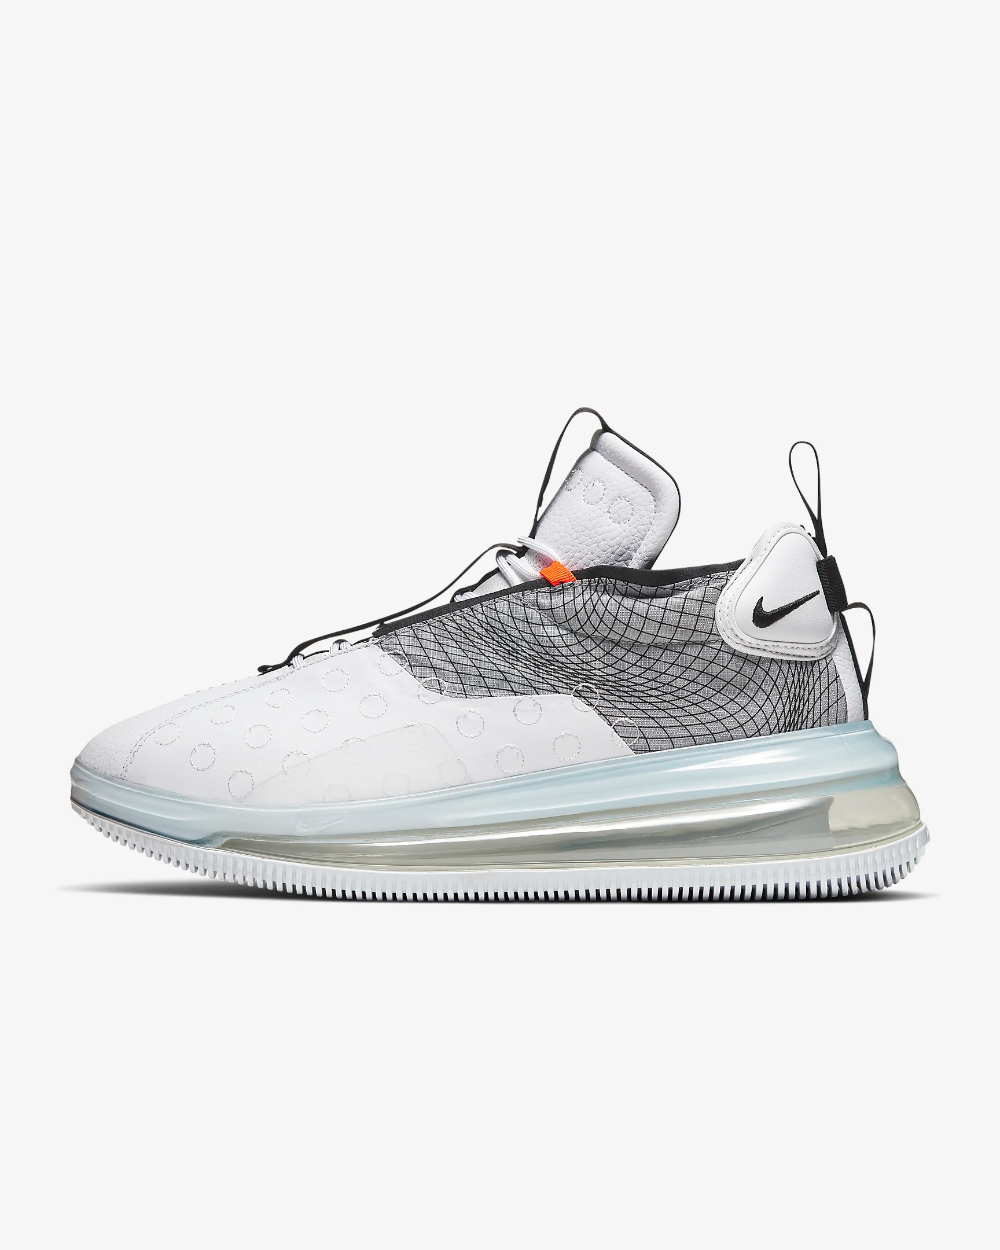 Air Max 720 Waves Men's Shoe | Мужская мода